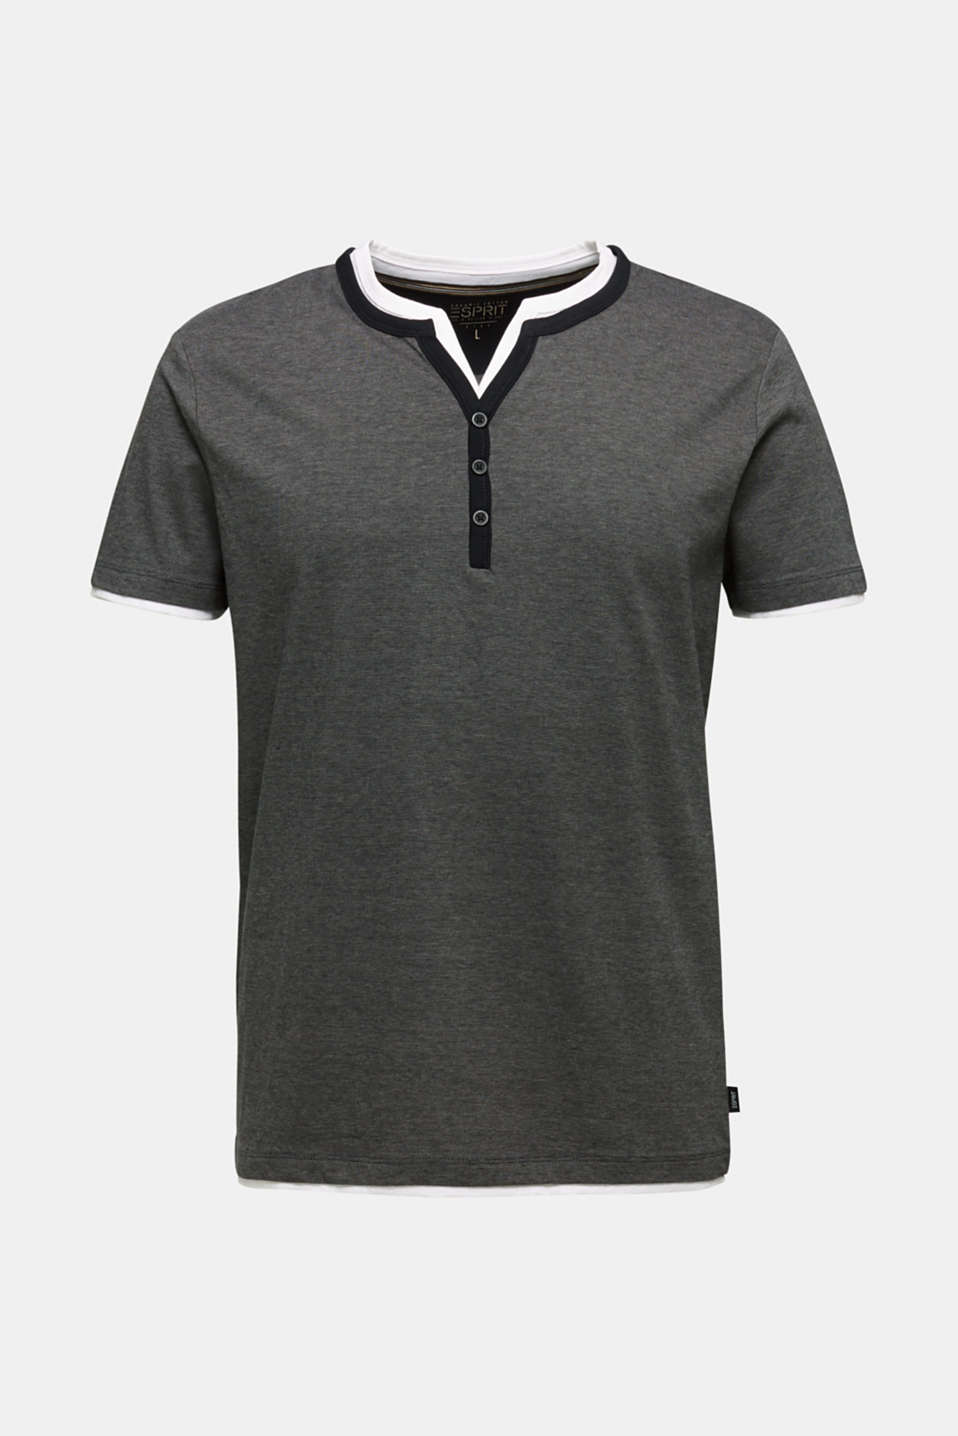 Jersey T-shirt in 100% cotton, BLACK 3, detail image number 6